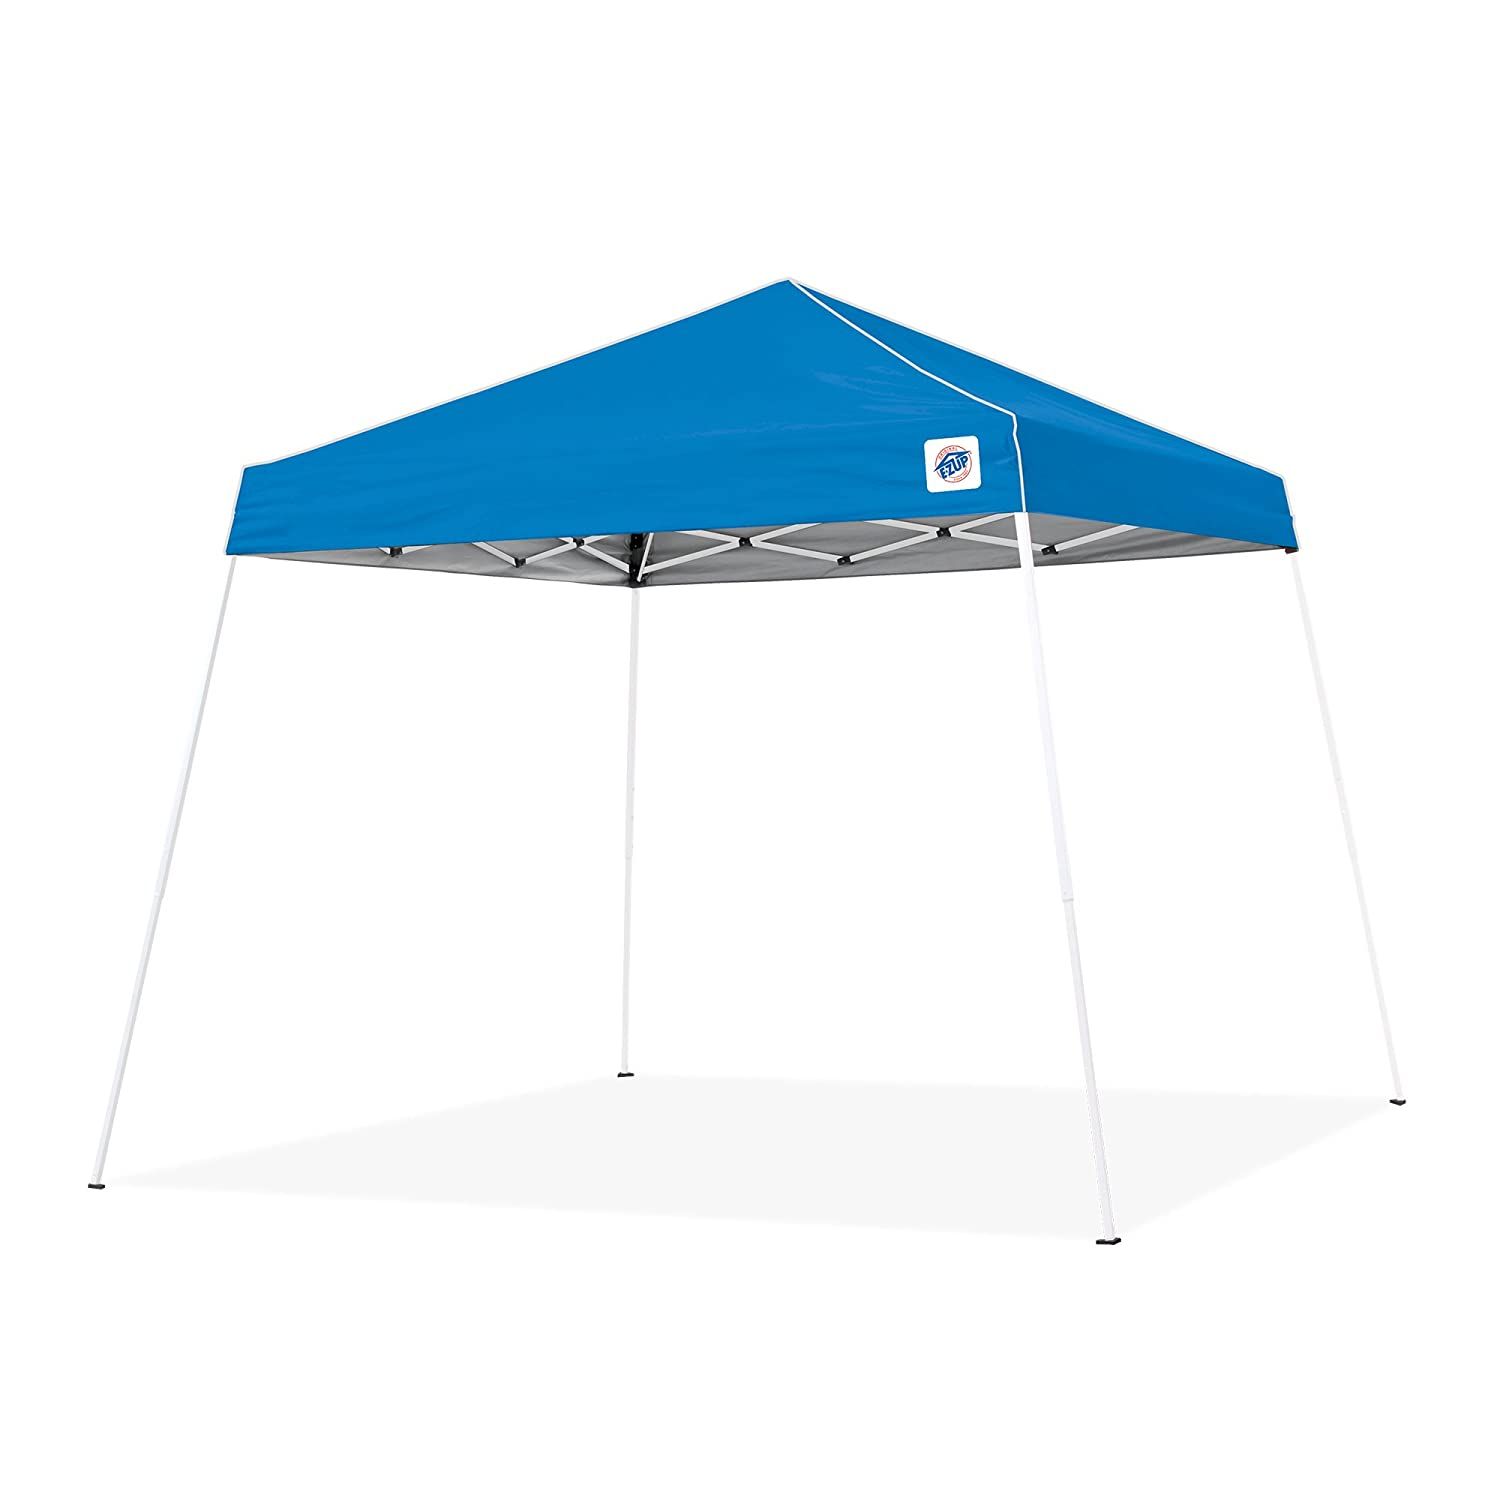 Amazon.com  E-Z UP Swift Instant Shelter Pop-Up Canopy 12 x 12 ft Blue  Garden u0026 Outdoor  sc 1 st  Amazon.com : 10 x 12 canopy tent - memphite.com